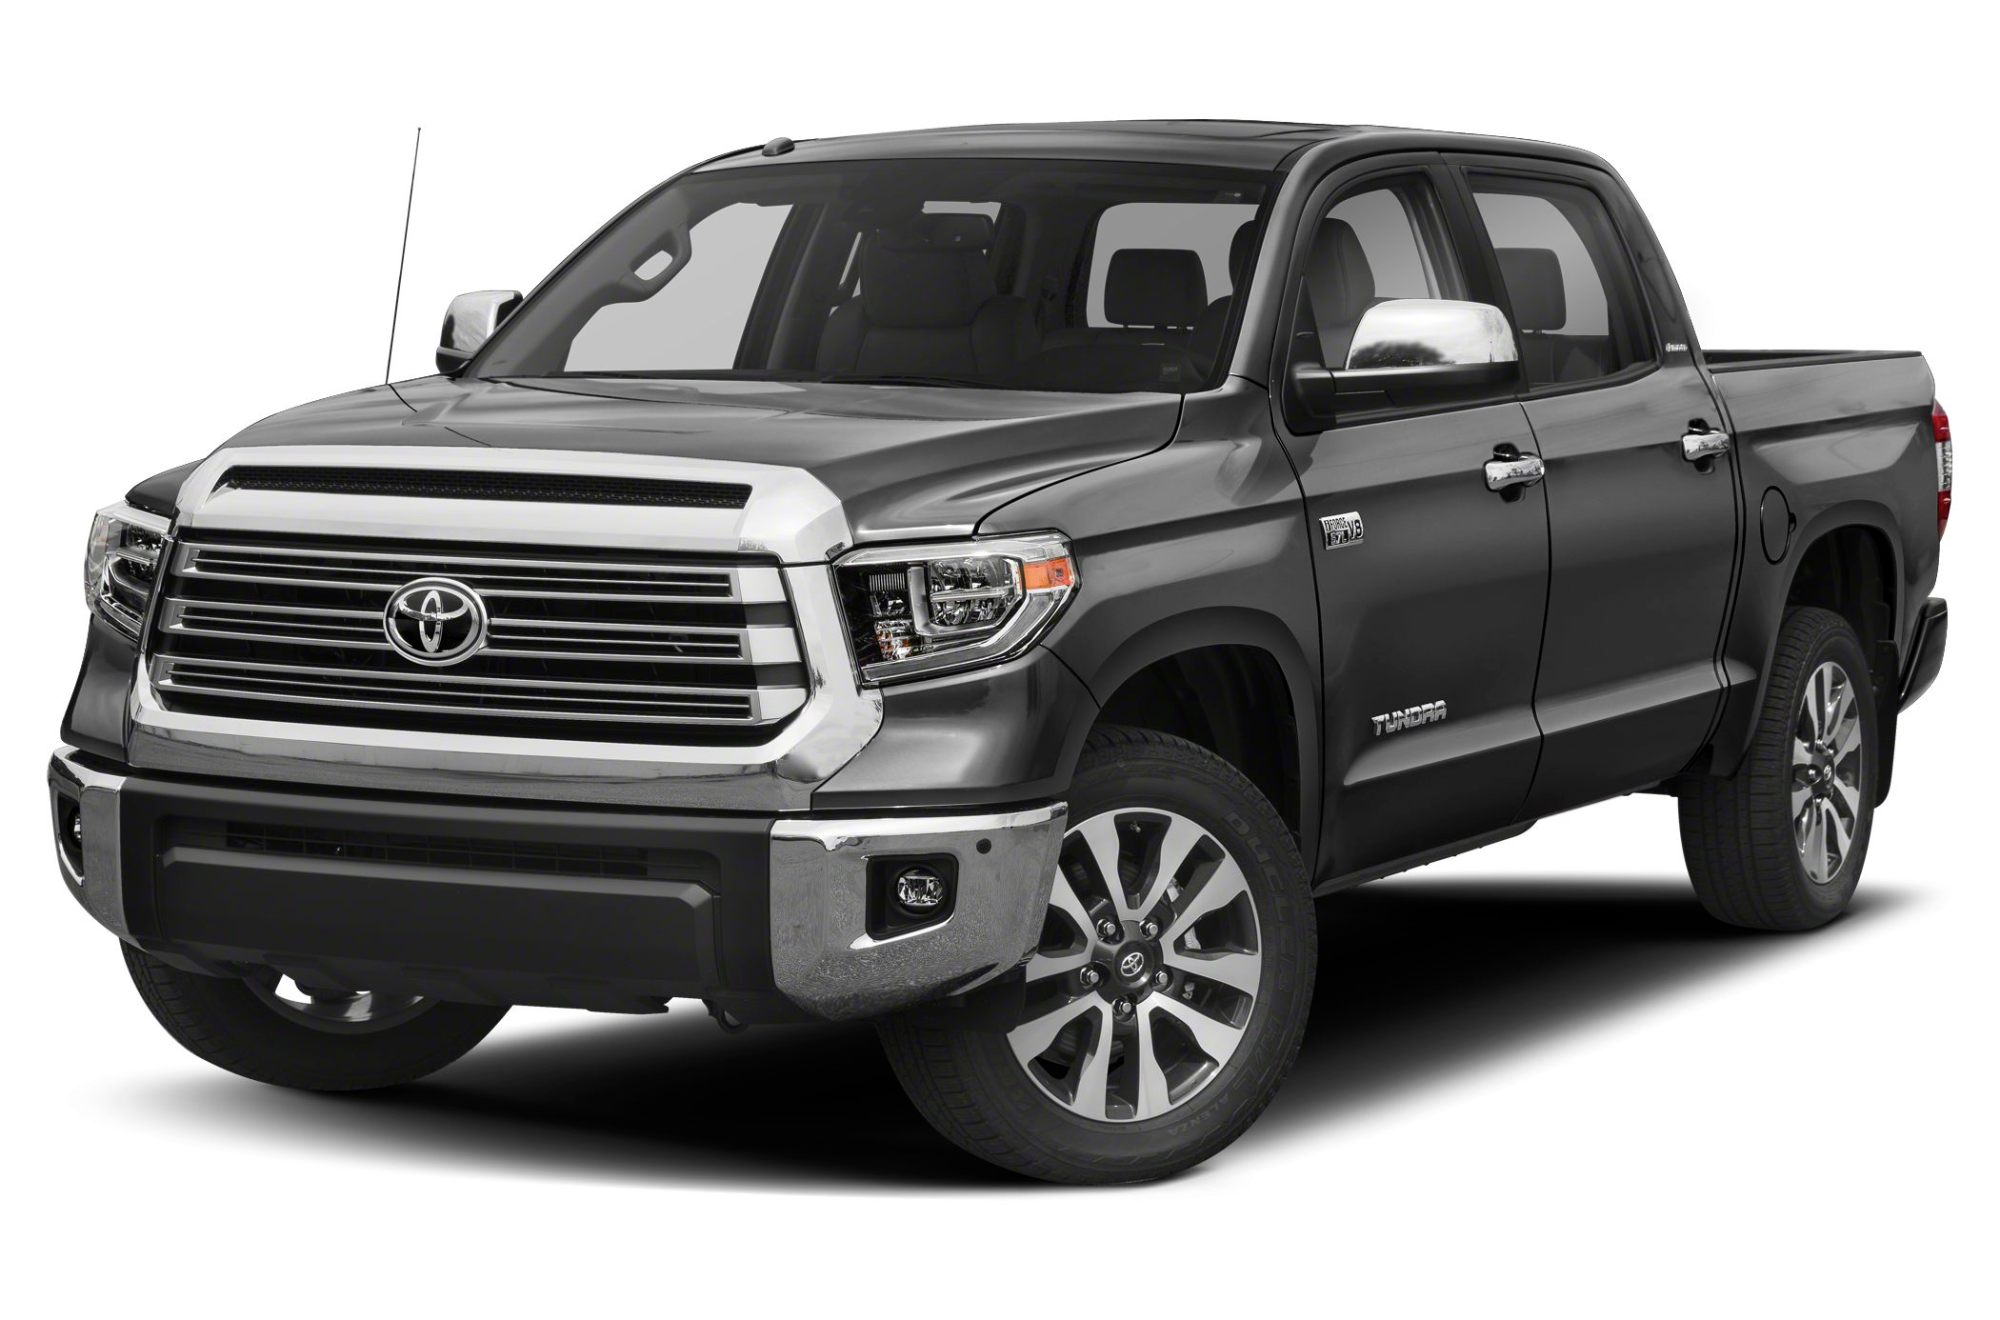 hight resolution of 2019 toyota tundra trd pro 5 7l v8 4x4 crewmax 5 6 ft box 145 7 in wb equipment